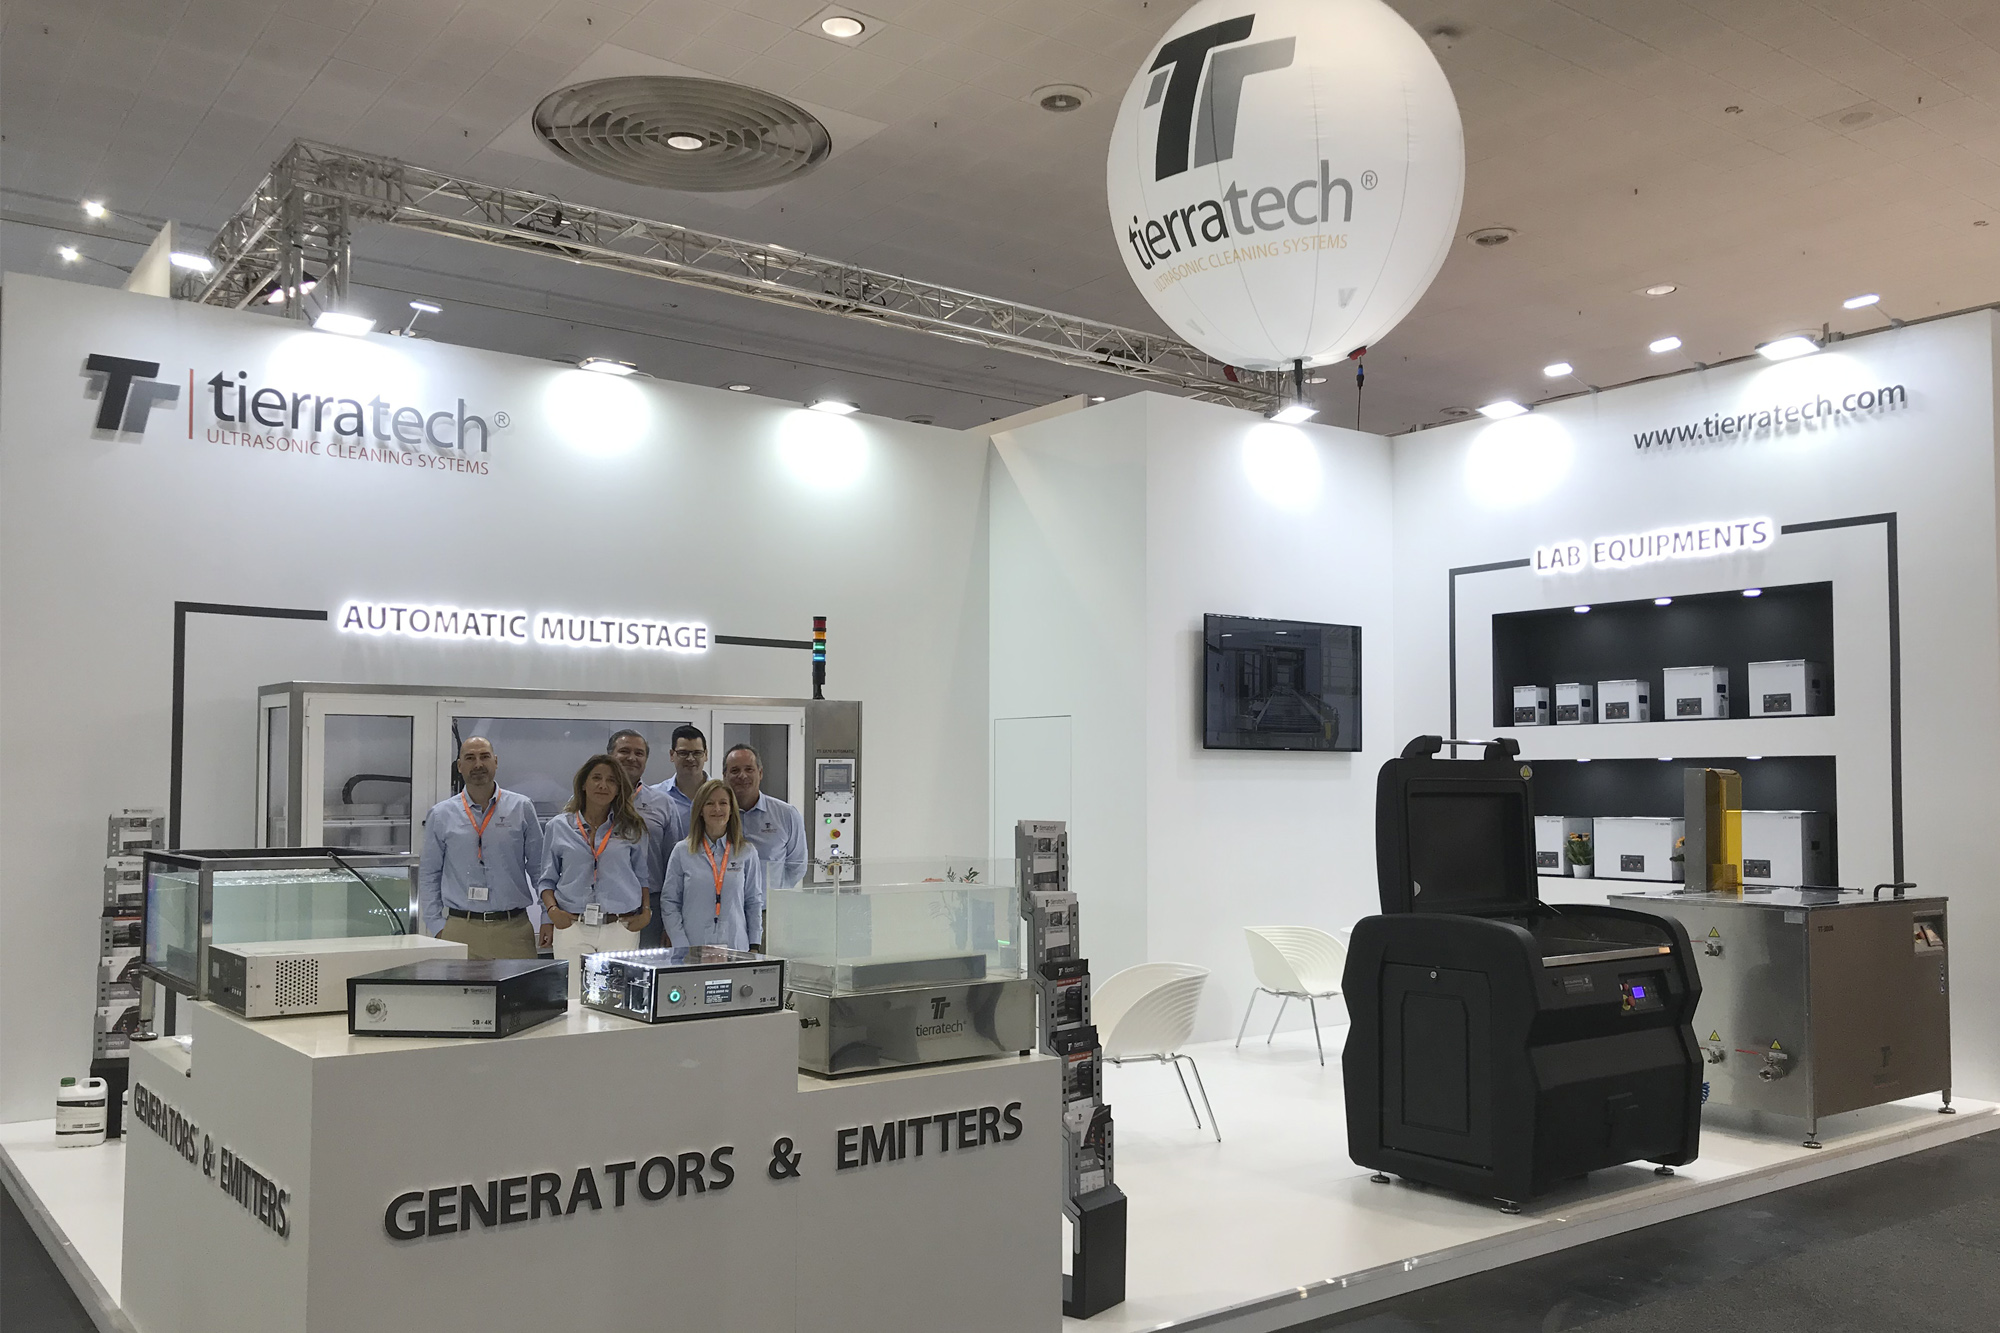 Tierratech took part in EMO Hannover 2019